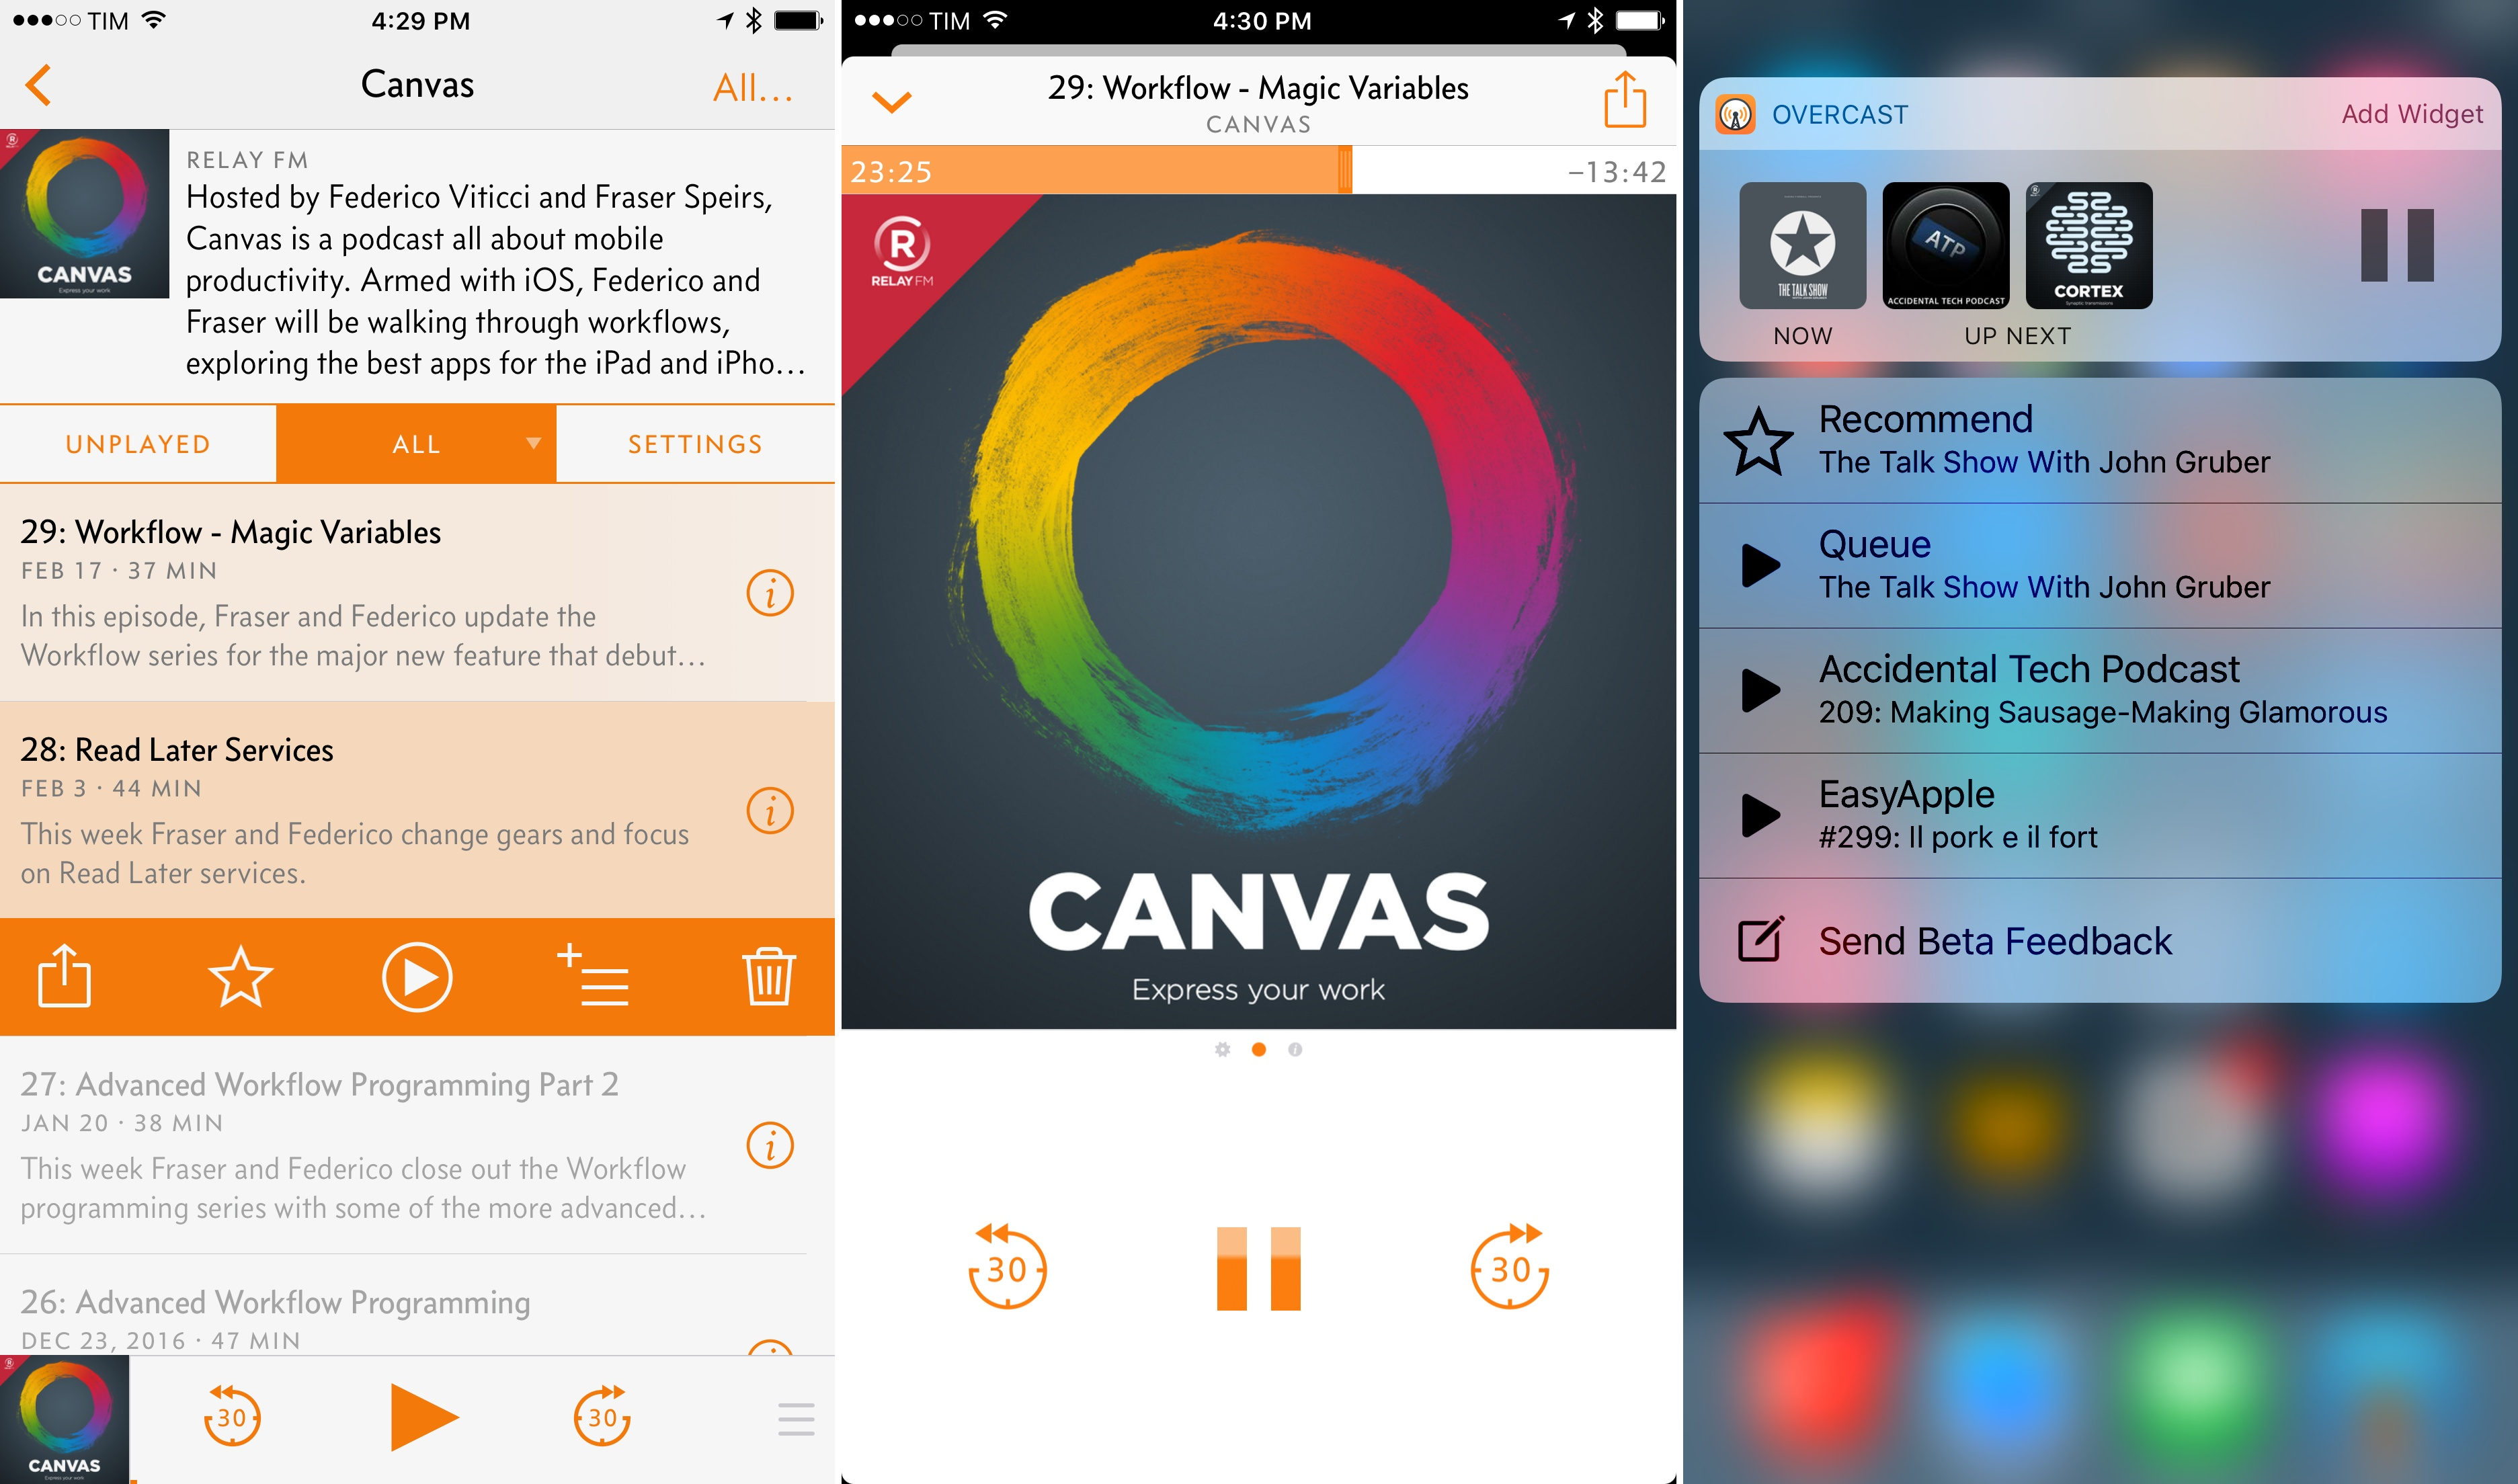 Overcast 3.0: iOS 10 Features, UI Changes, Easy Queuing, and an ...